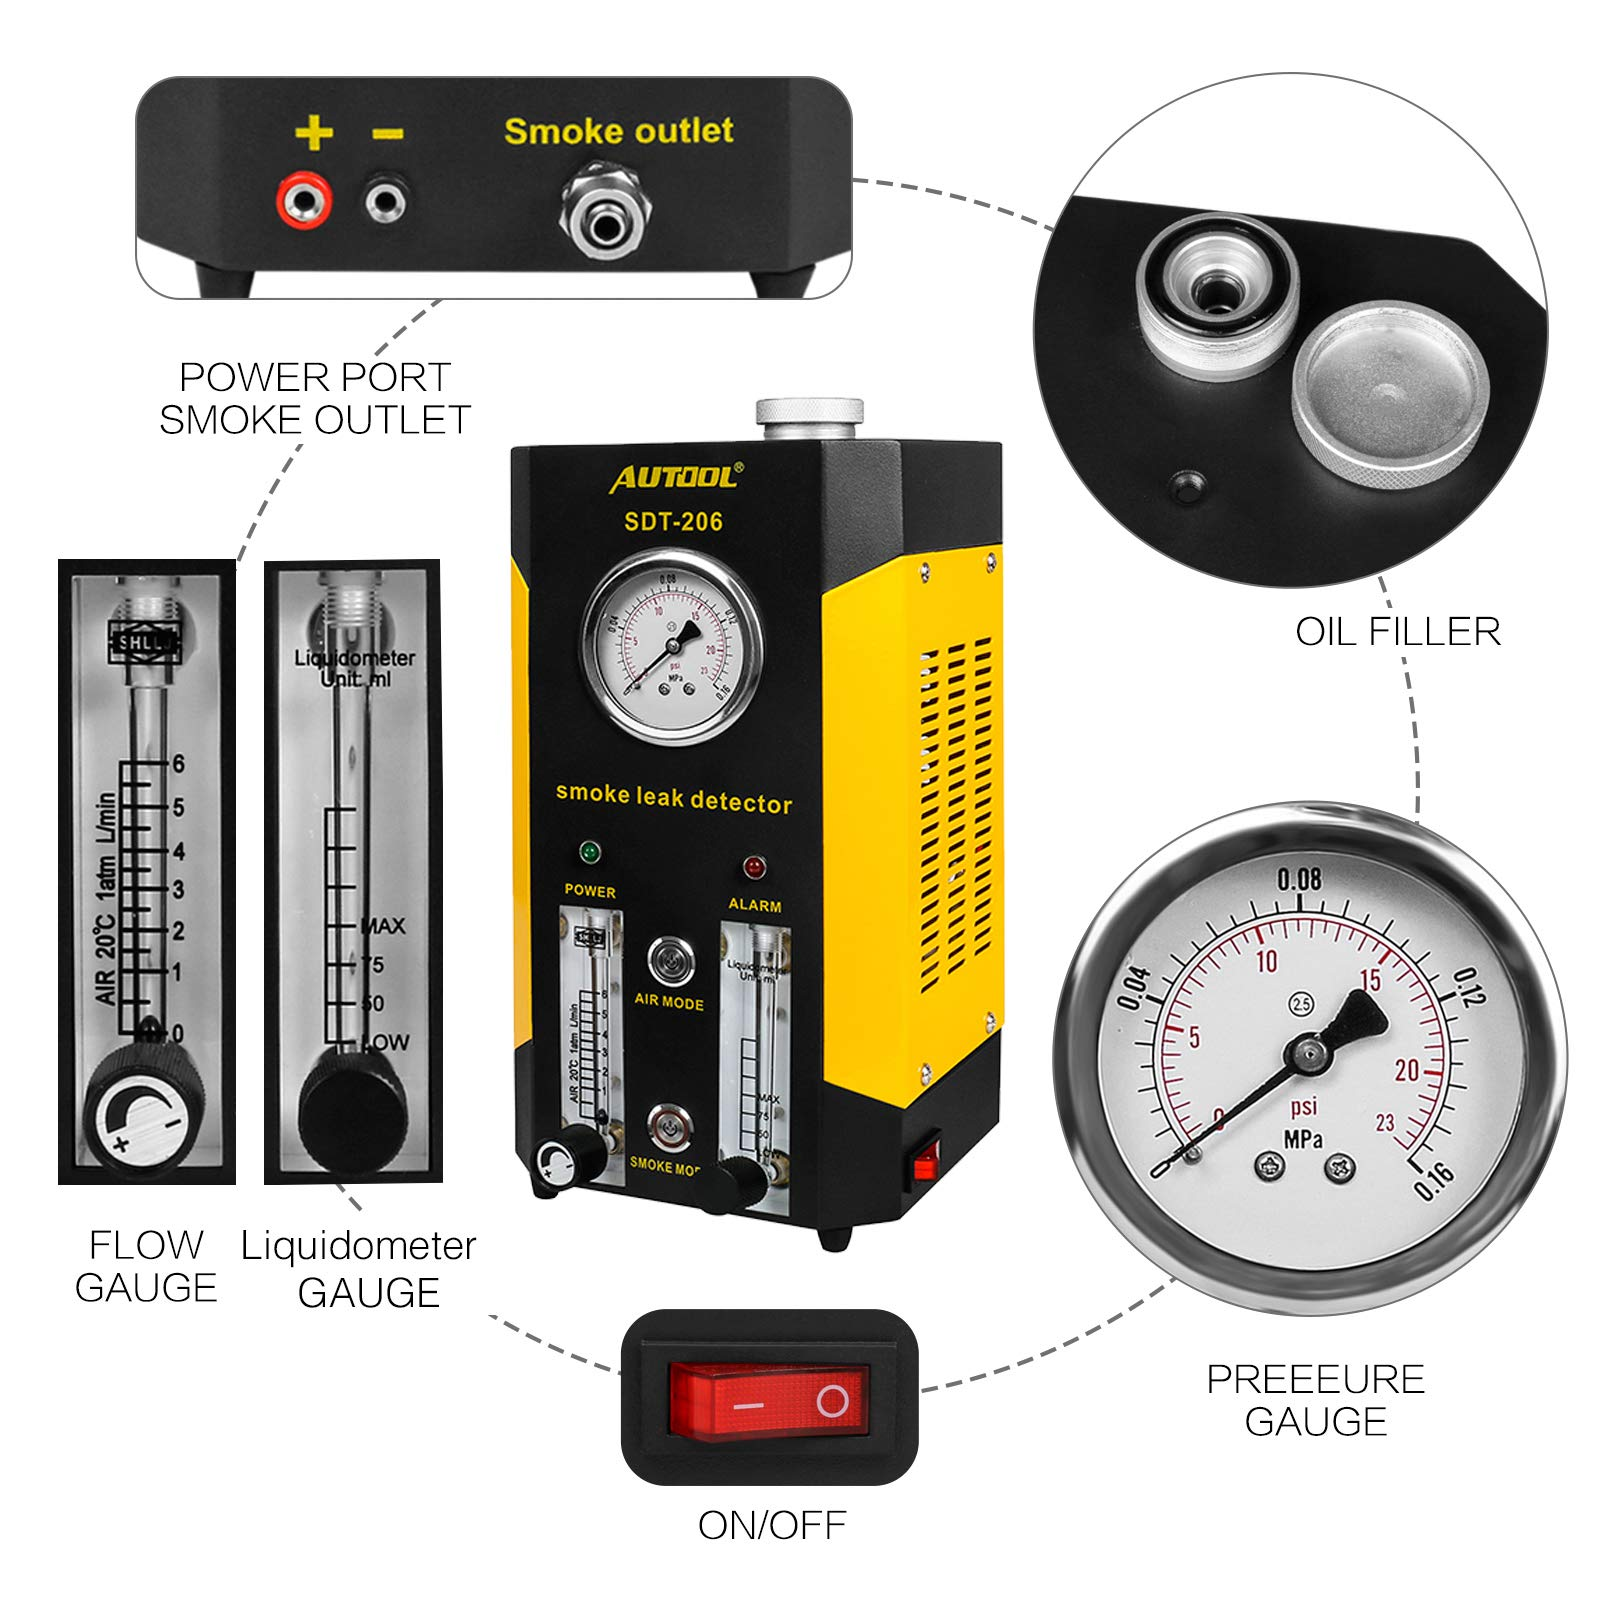 AUTOOL SDT-206 Automotive EVAP Leaks Testing Machine, 12V Vehicle Pipes Fuel Leakage Detector Diagnositc Tester for Car/Motorcycles/Boat (Newest Dual Modes) by AUTOOL (Image #3)